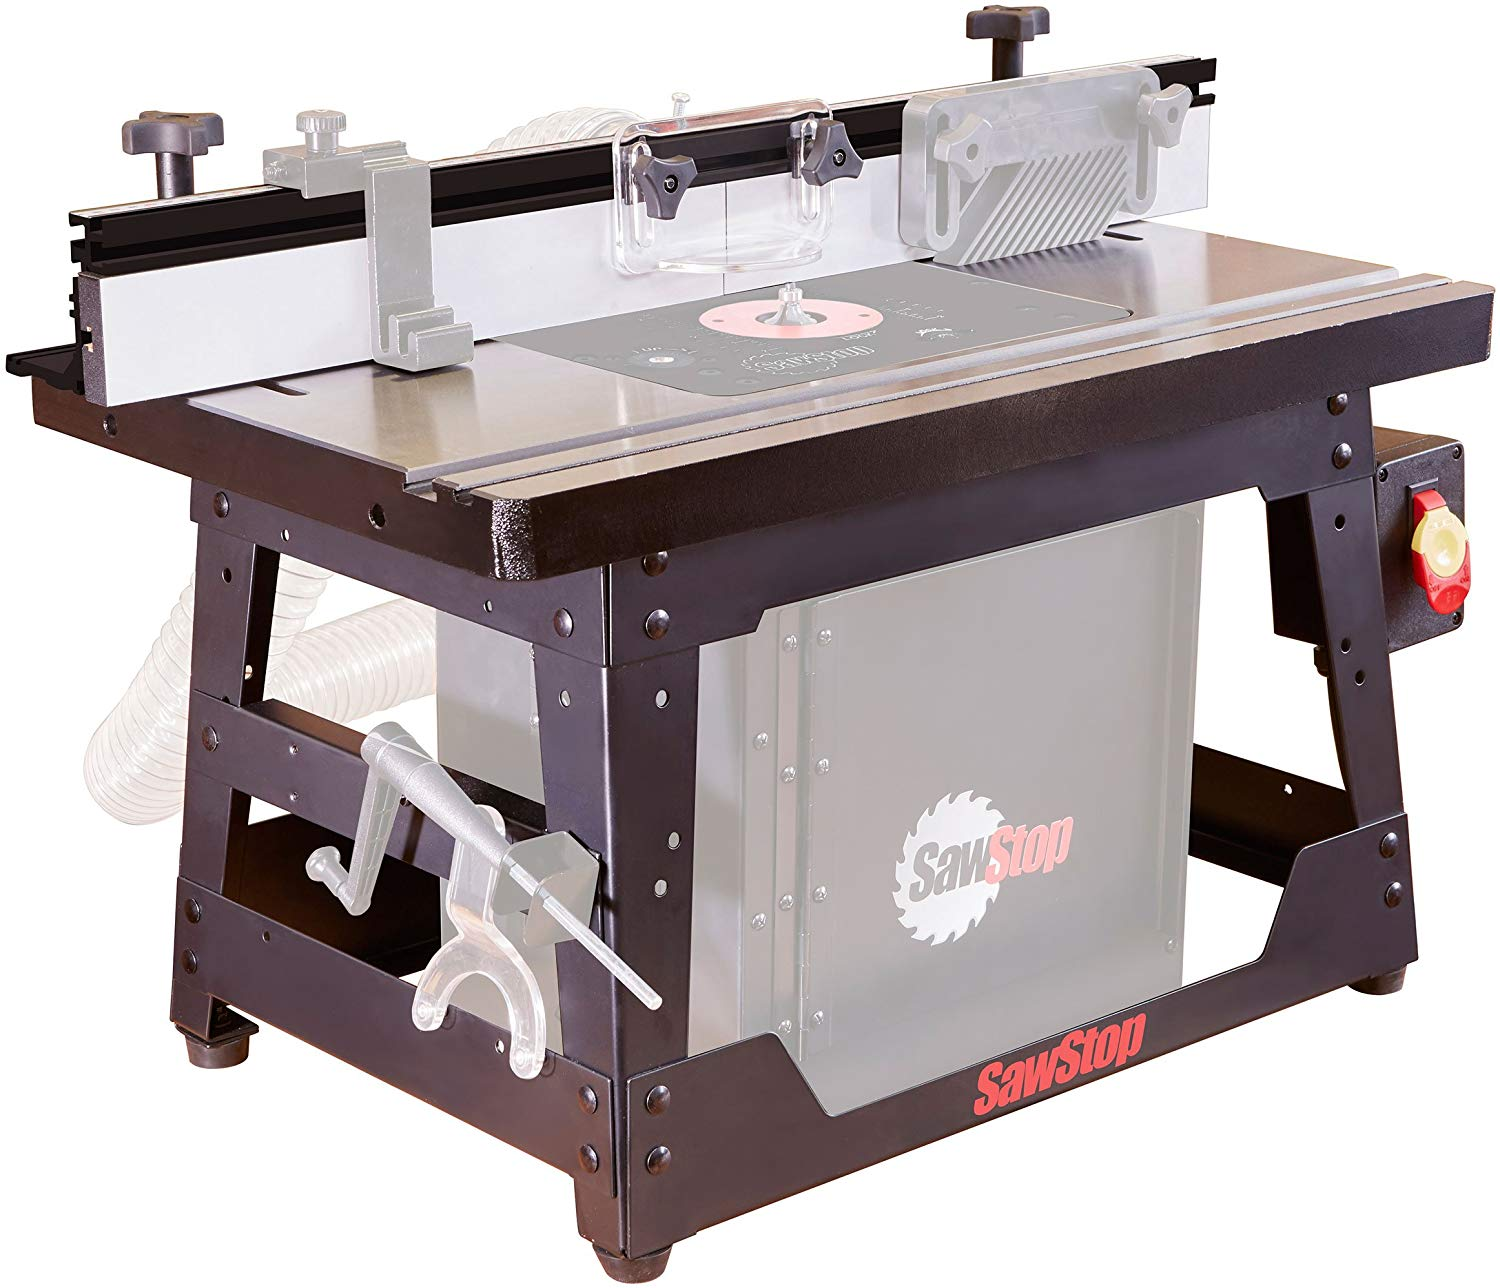 SawStop Benchtop Router Table Review